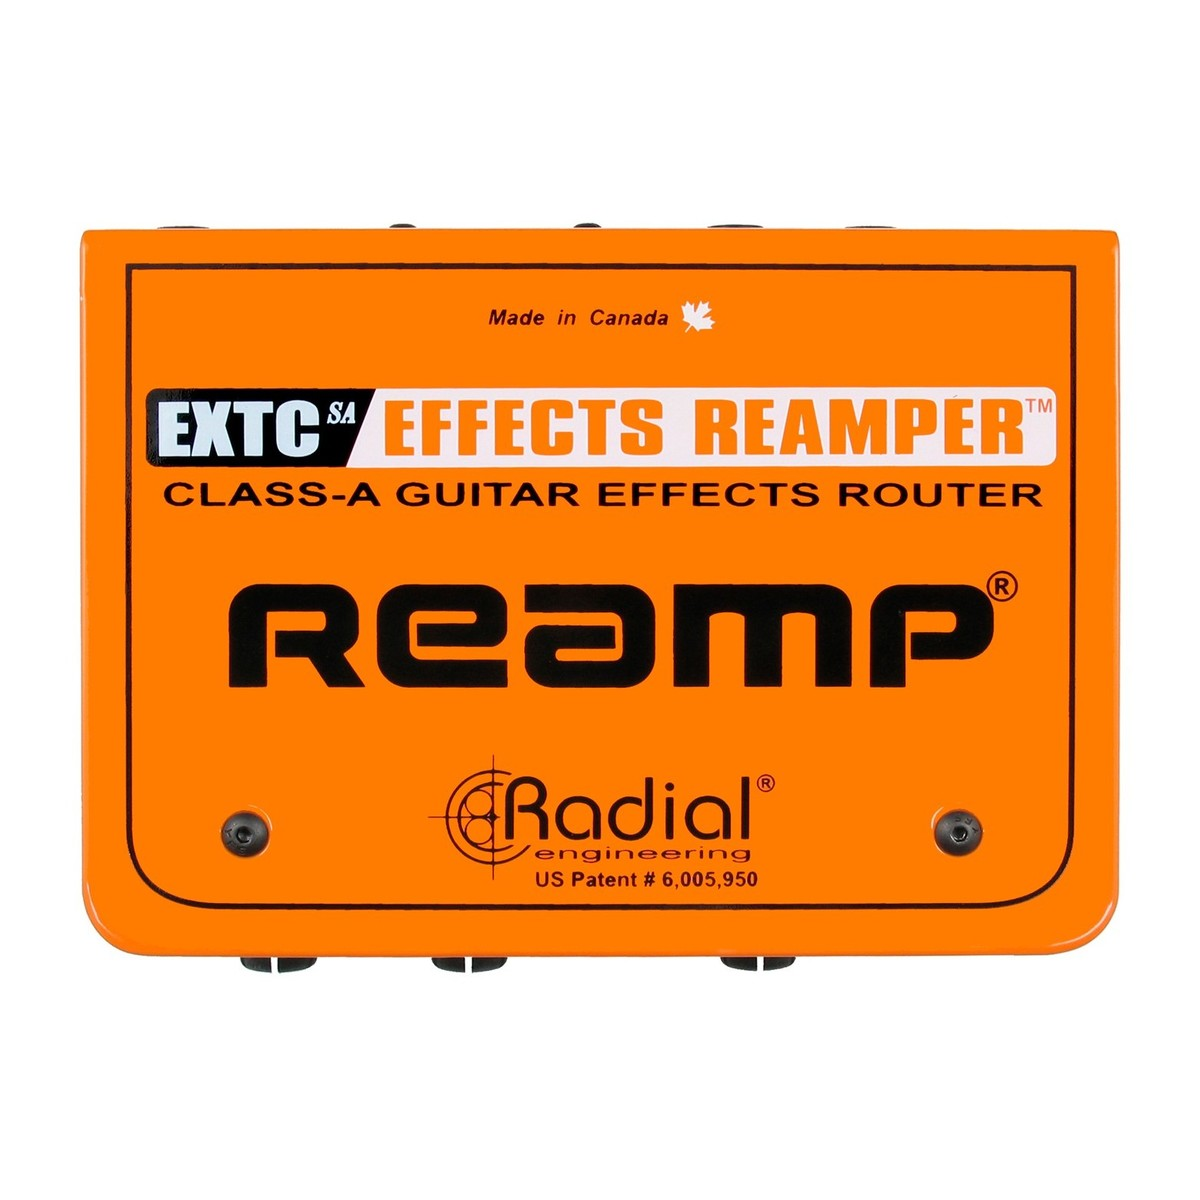 Radial Extc Sa Guitar Effects Interface And Reamp Box At Gear4music Electrical Schemes For Electric Guitars Top View Loading Zoom